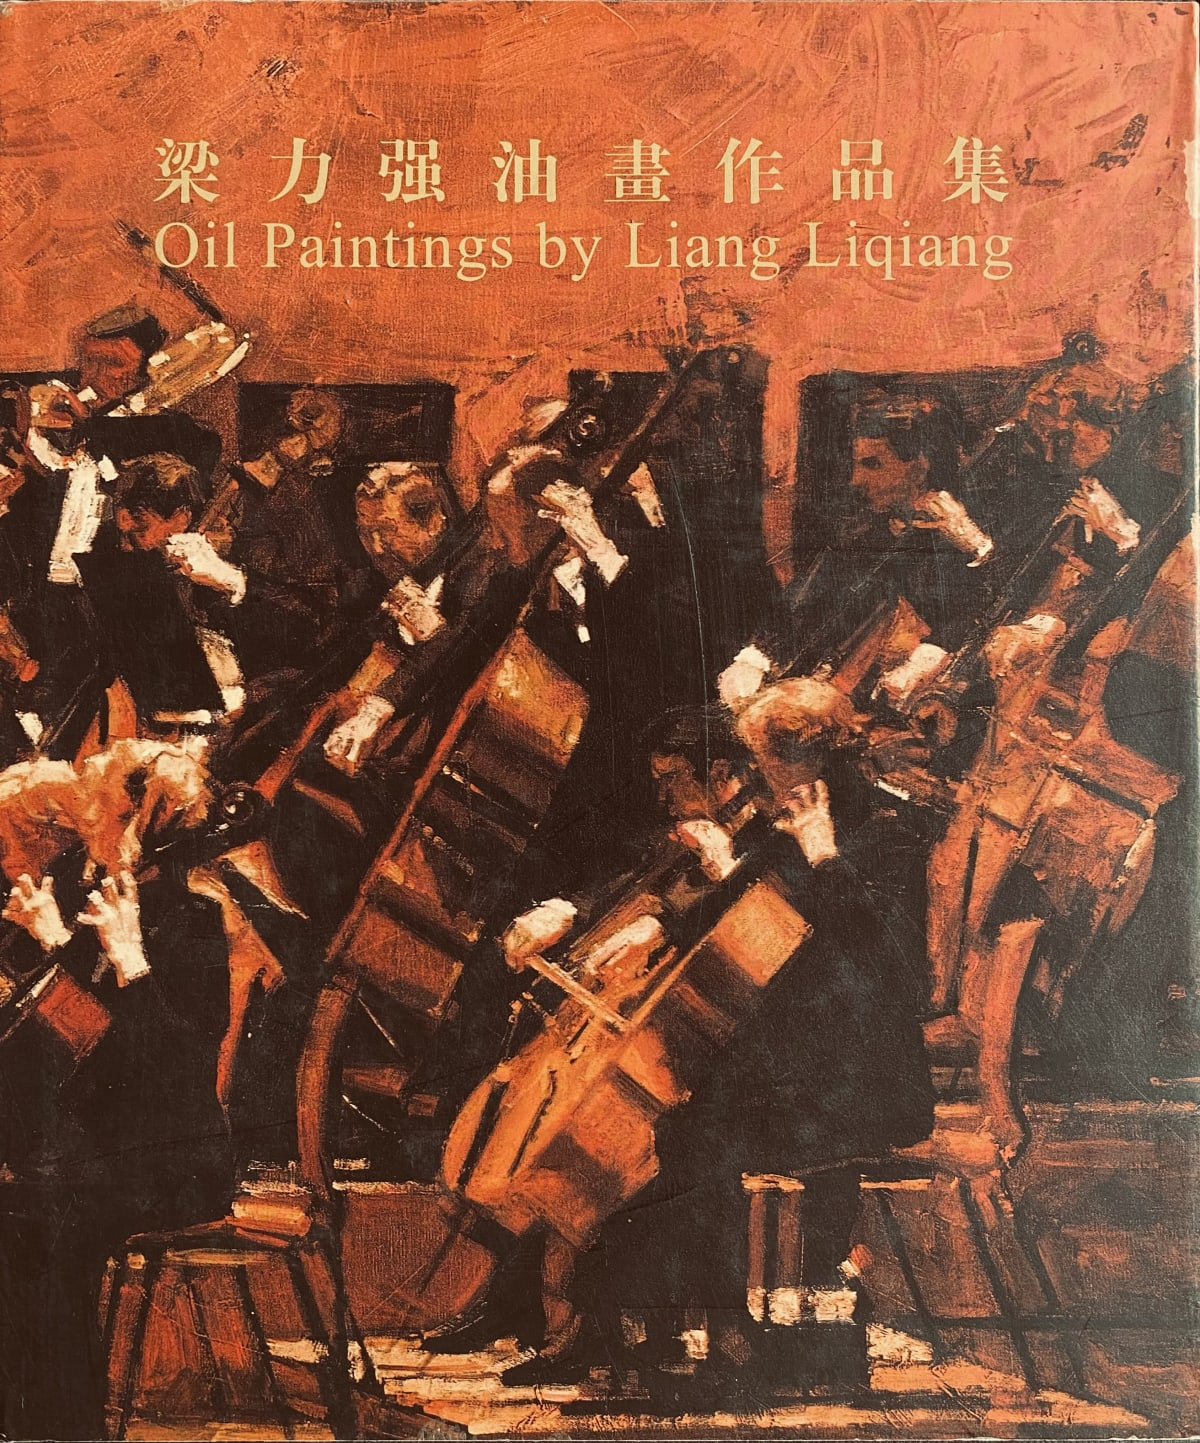 Oil Paintings by Liang Liqiang 梁力強油畫作品集